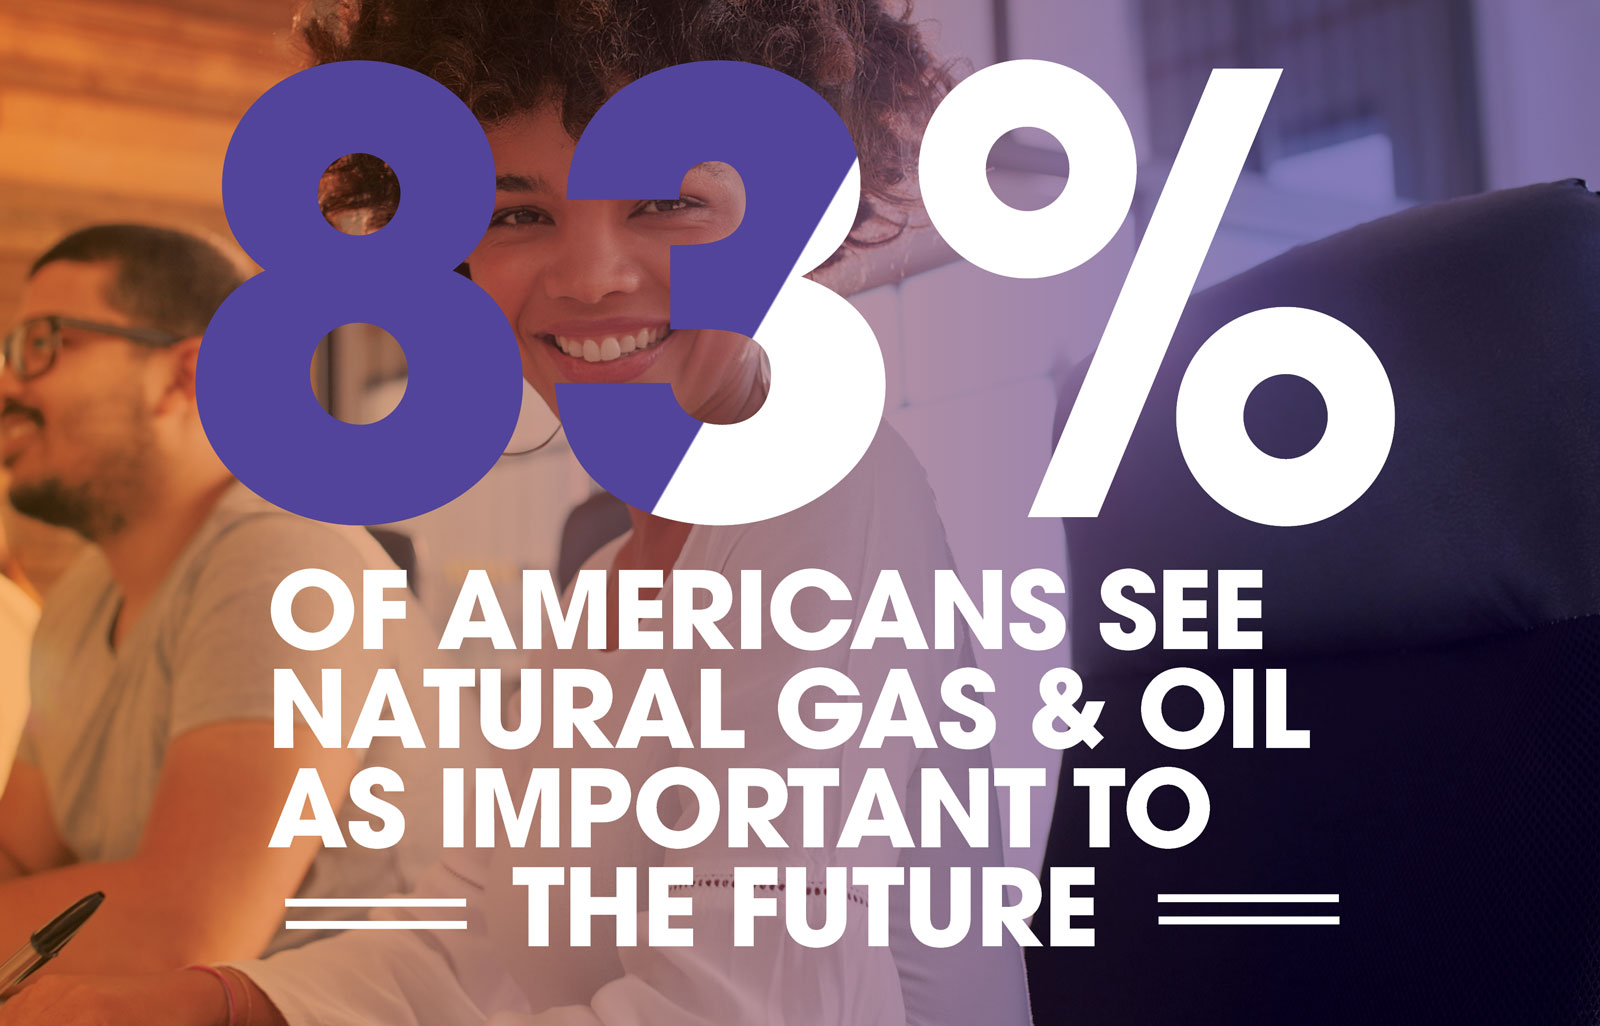 83% of Americans see natural gas and oil as important to the future